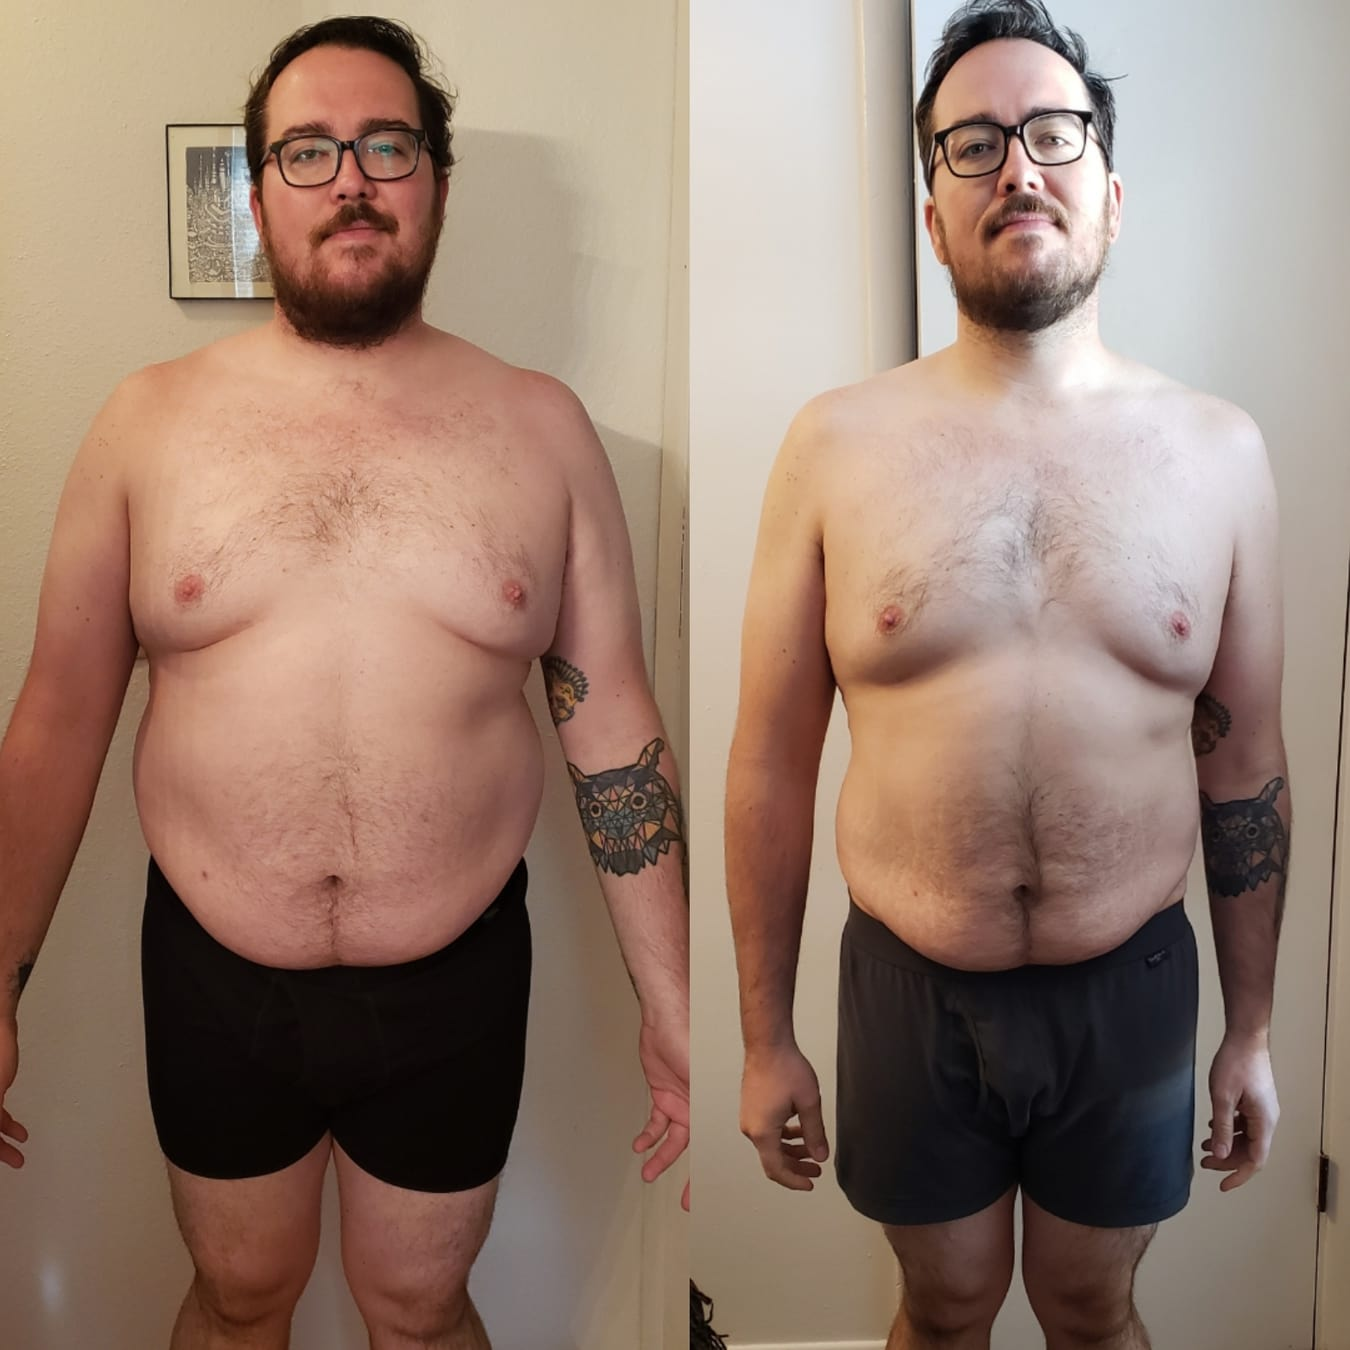 metabolic performance protocol fat loss before and after progress photo